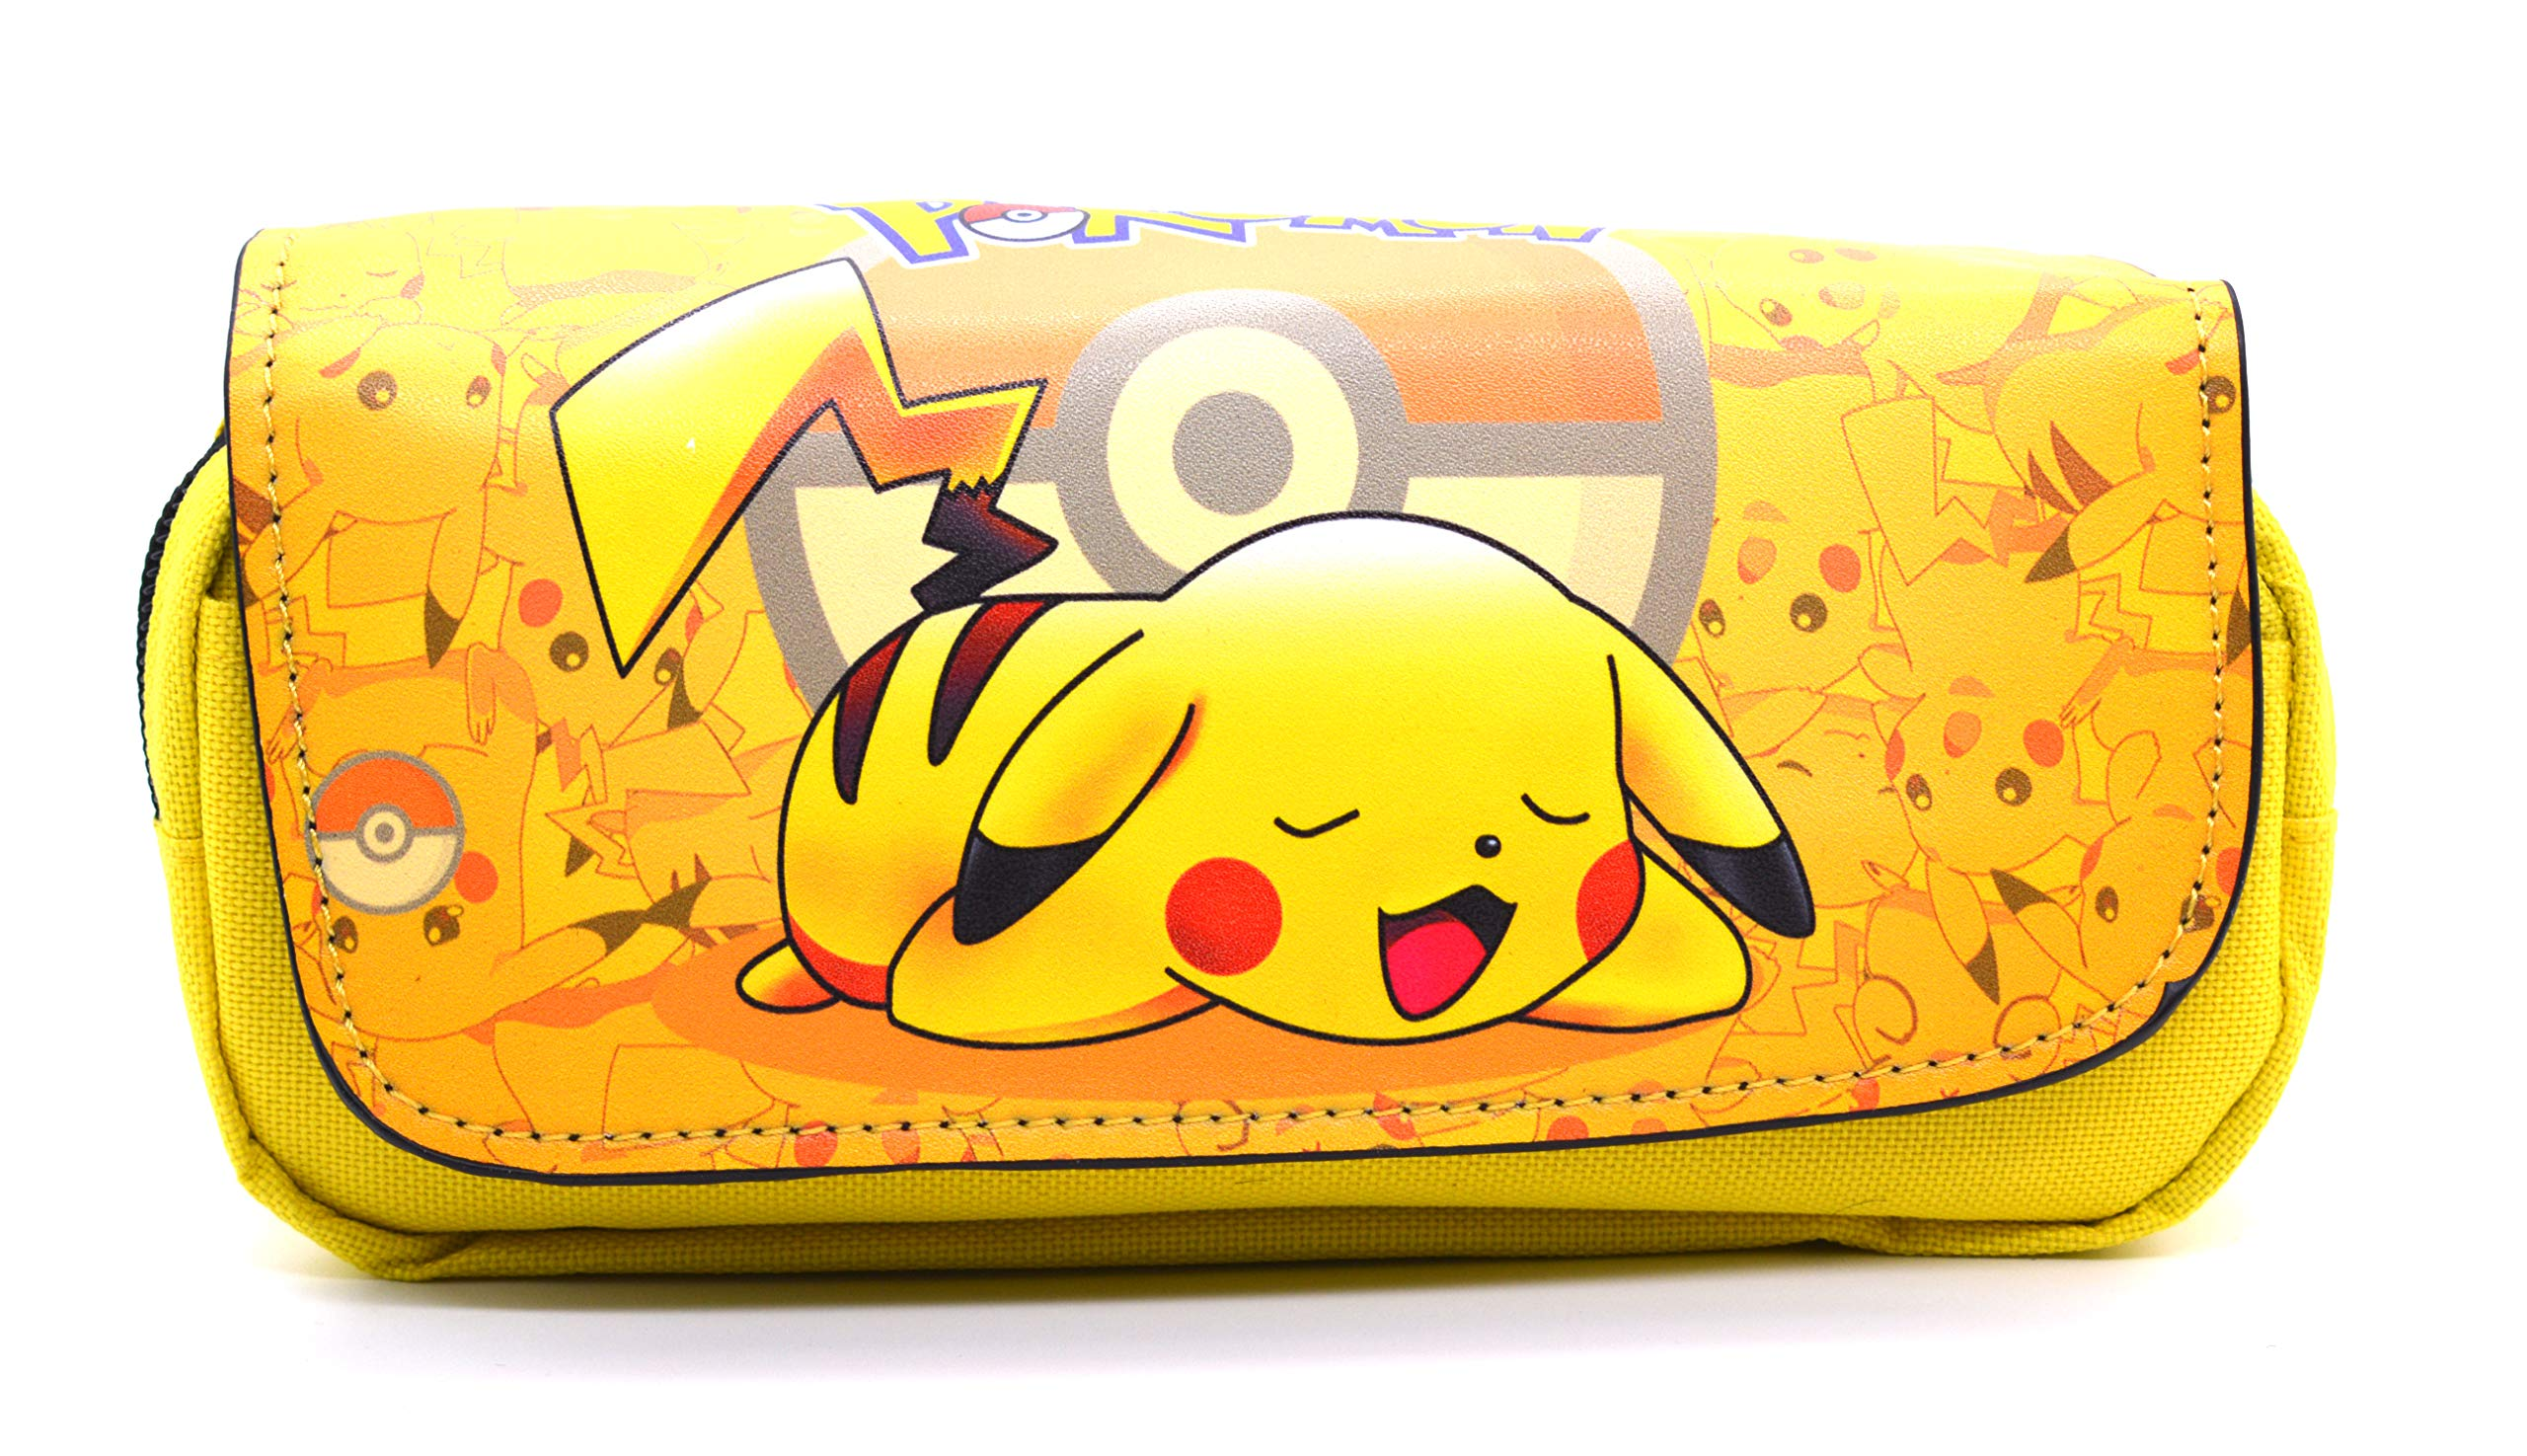 Anime Domain Estuche para lápices de Pikachu de Pokemon